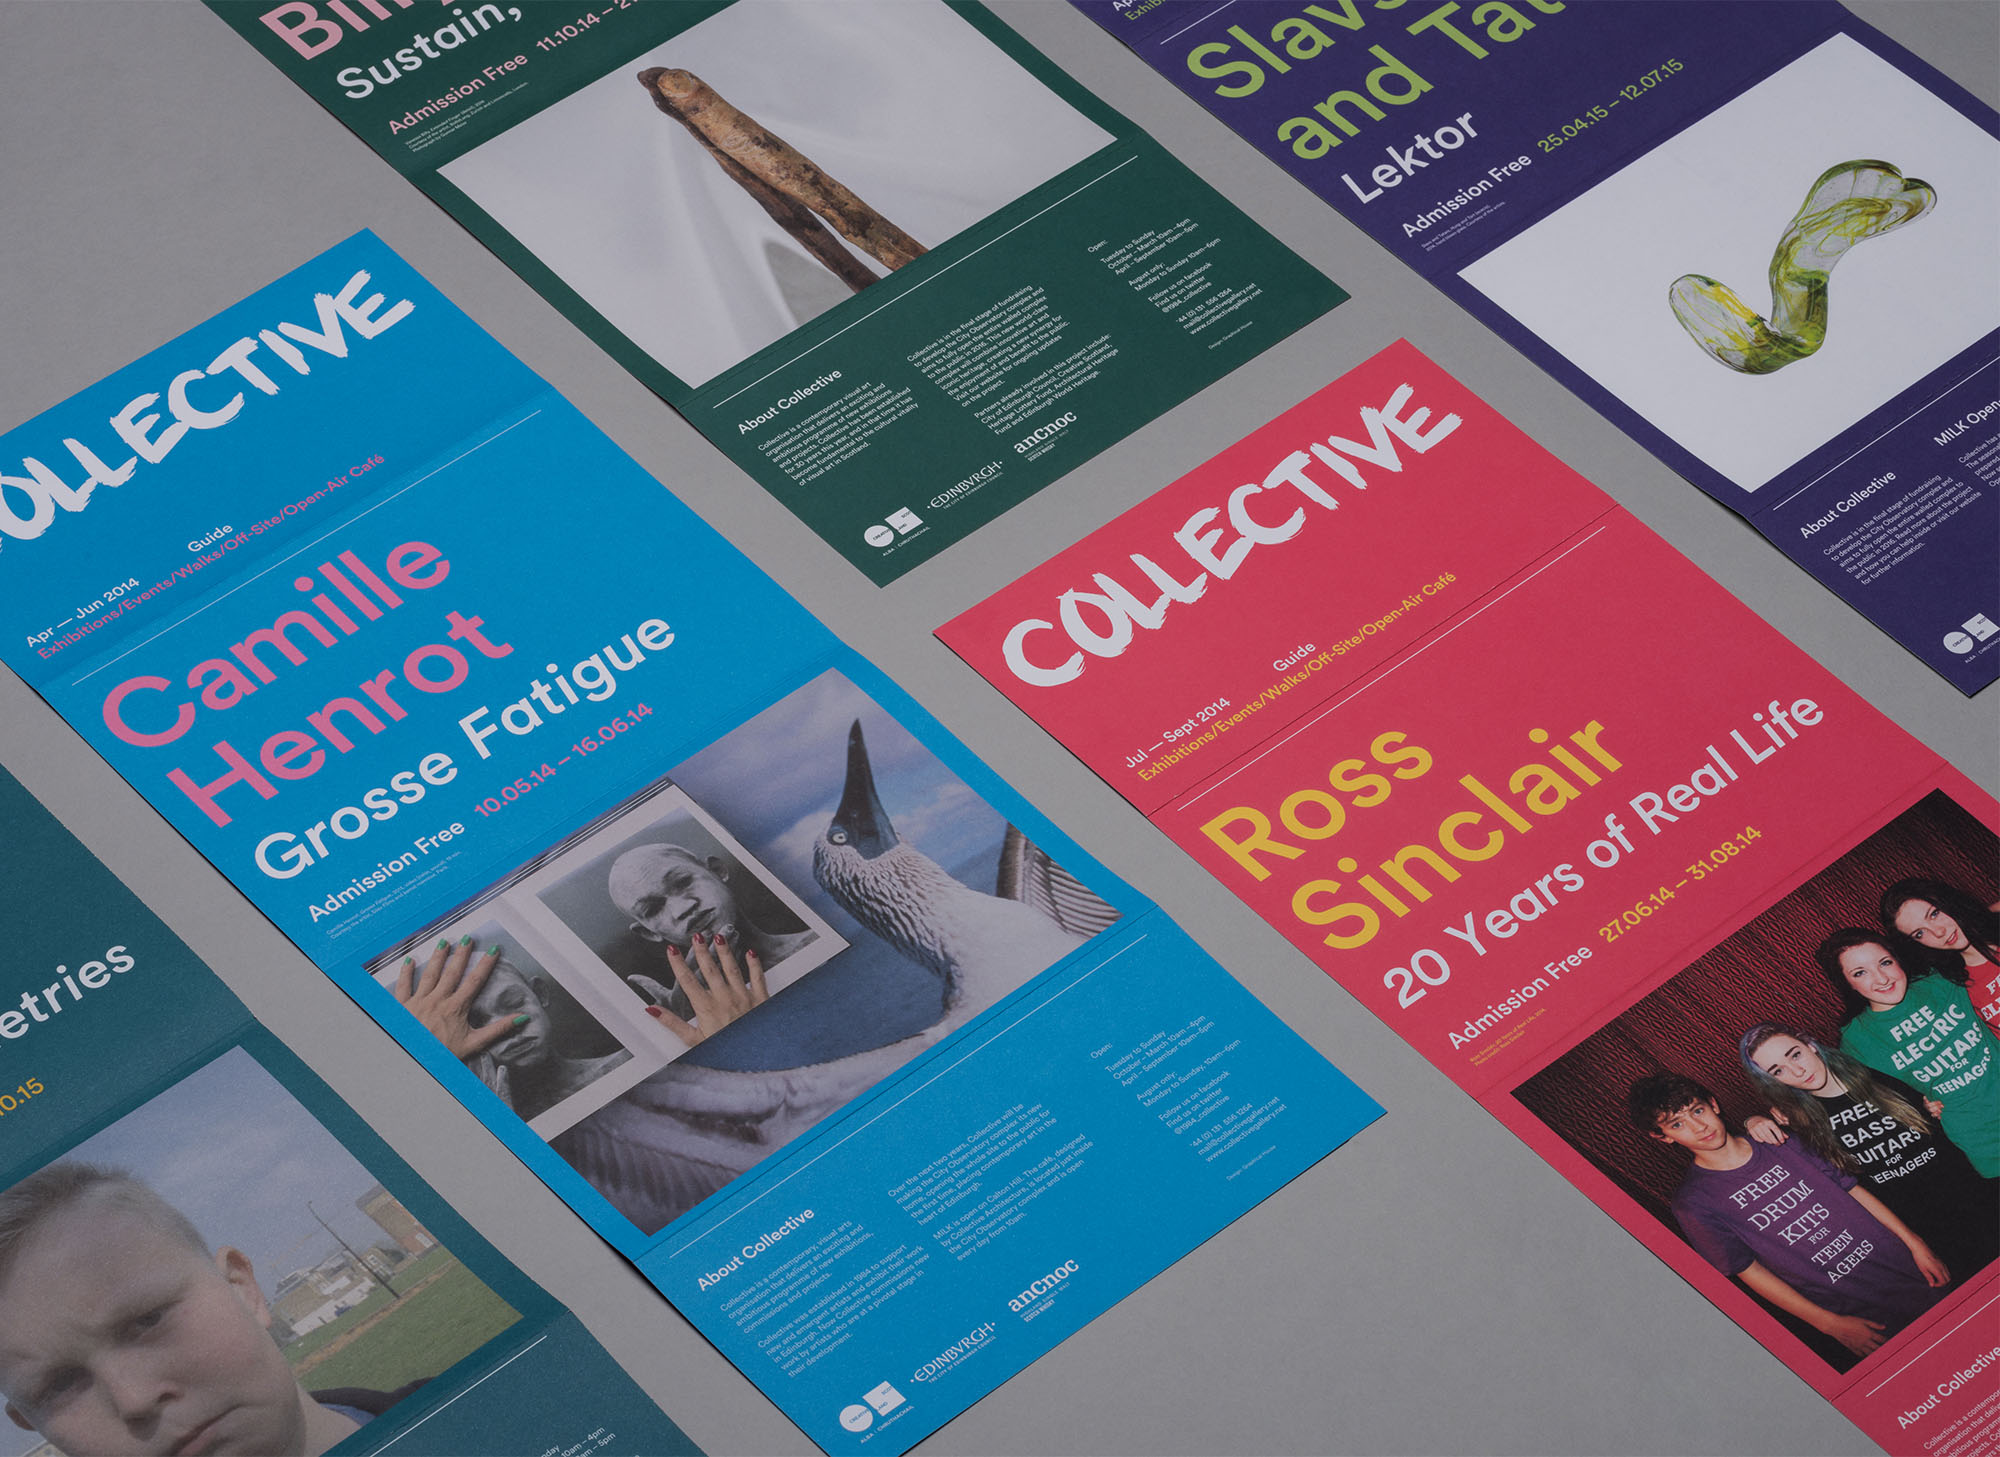 Various leaflets for Collective Gallery